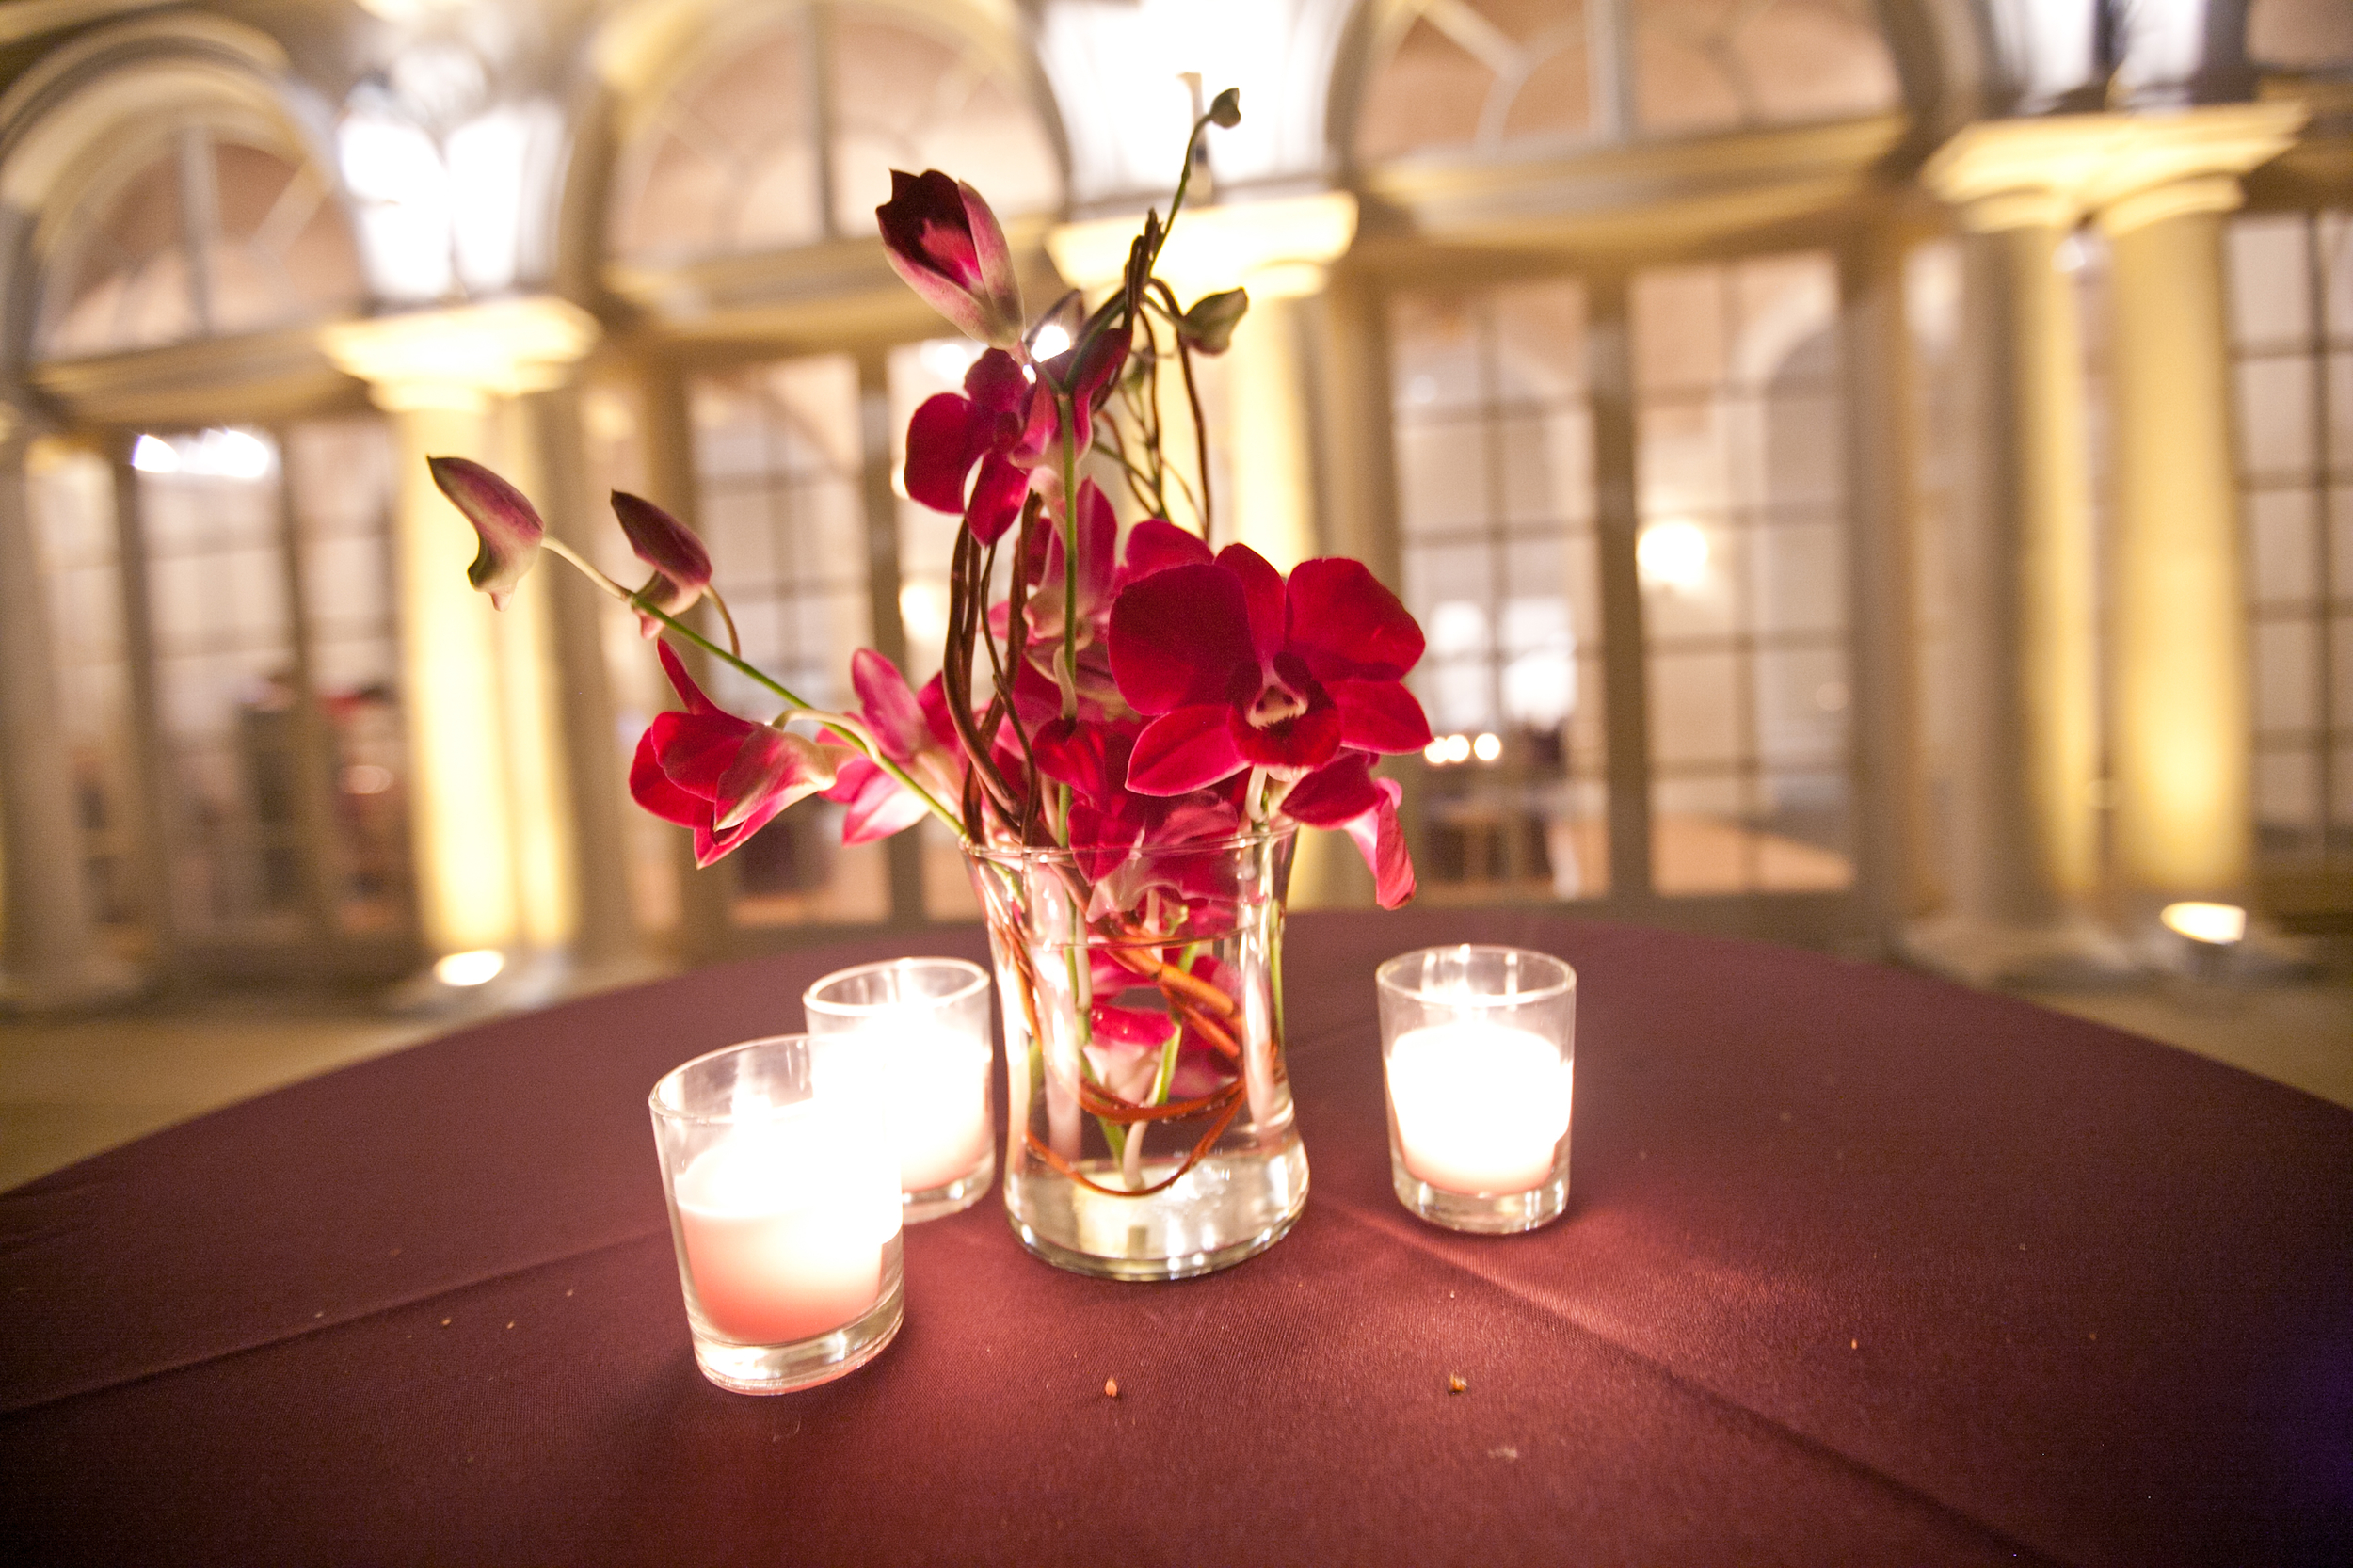 NYC-Wedding-Planner-Andrea-Freeman-Events-Wadsworth-Mansion-CT-16.jpg